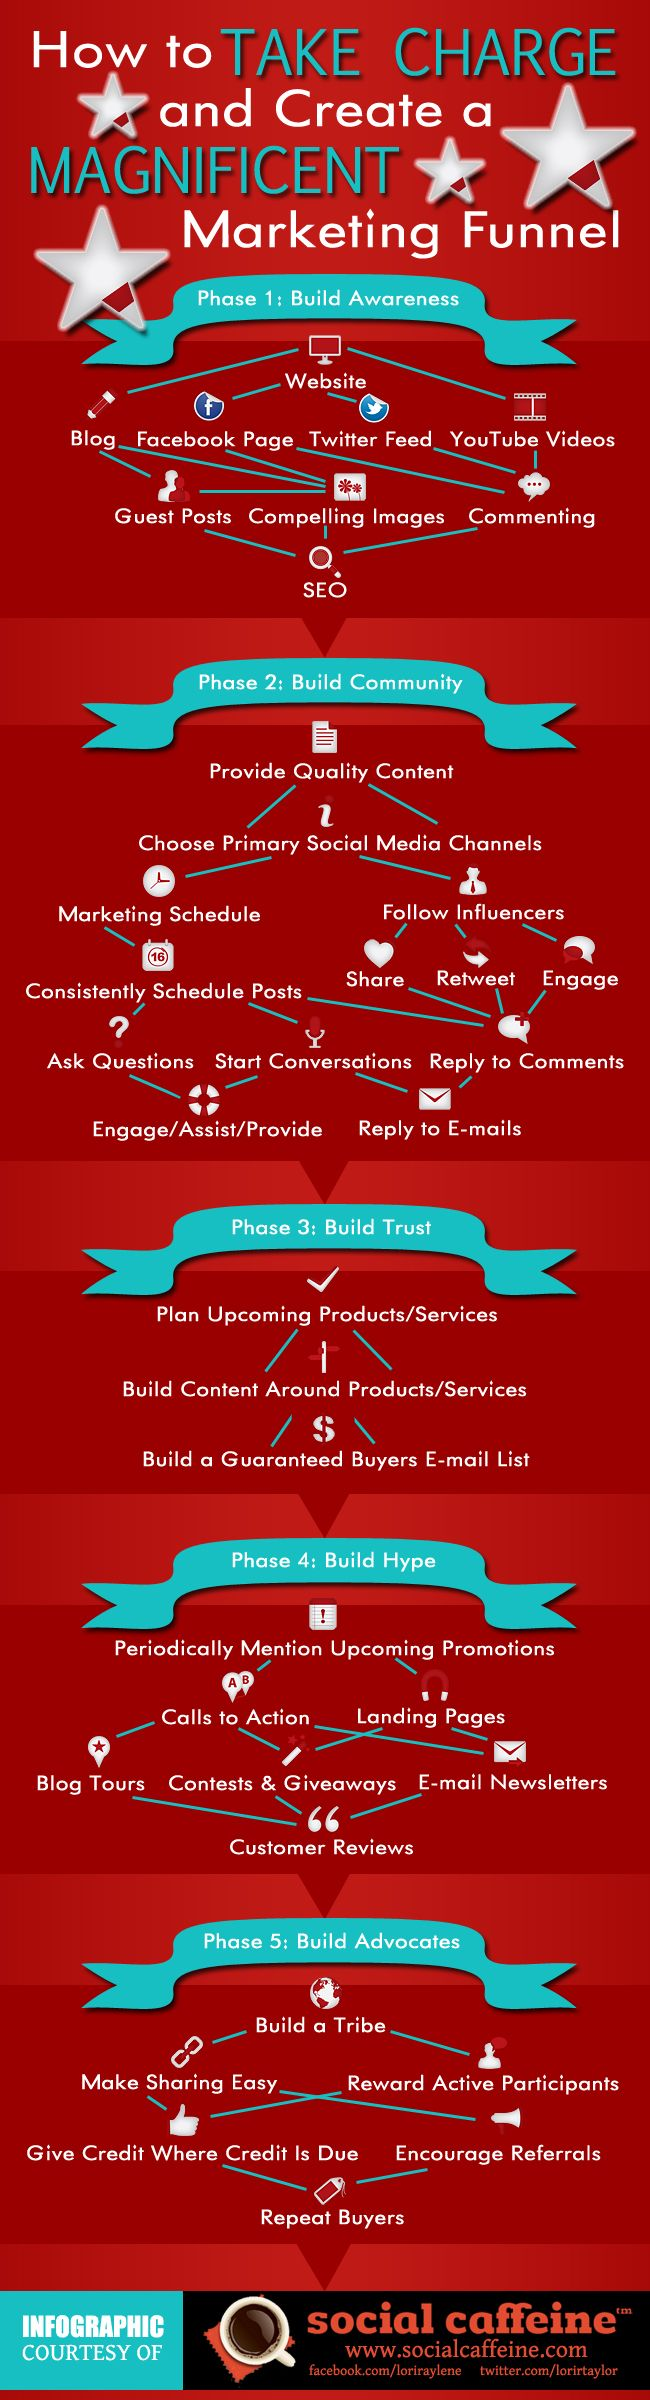 how to take charge and creat a magnificent marketing funnel Social Marketing #infographic: Idea, Digital Marketing, Marketing Funnel, Marketingfunnel Infographic, Socialmedia, Create, Business, Marketing Infographics